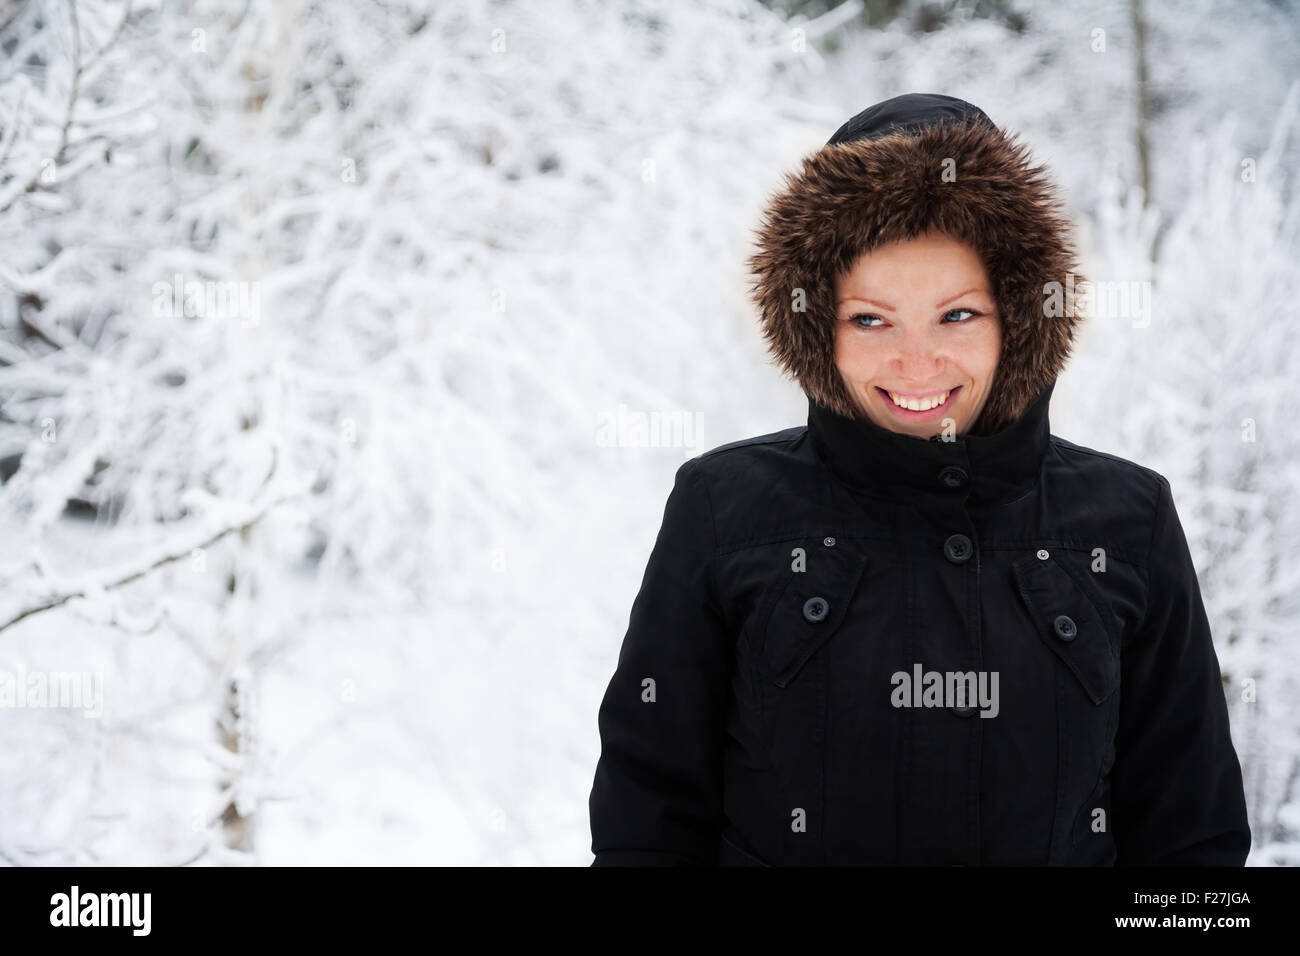 Cheerful Young Woman par temps de neige en parc avec des arbres couverts de neige, Copy Space Photo Stock